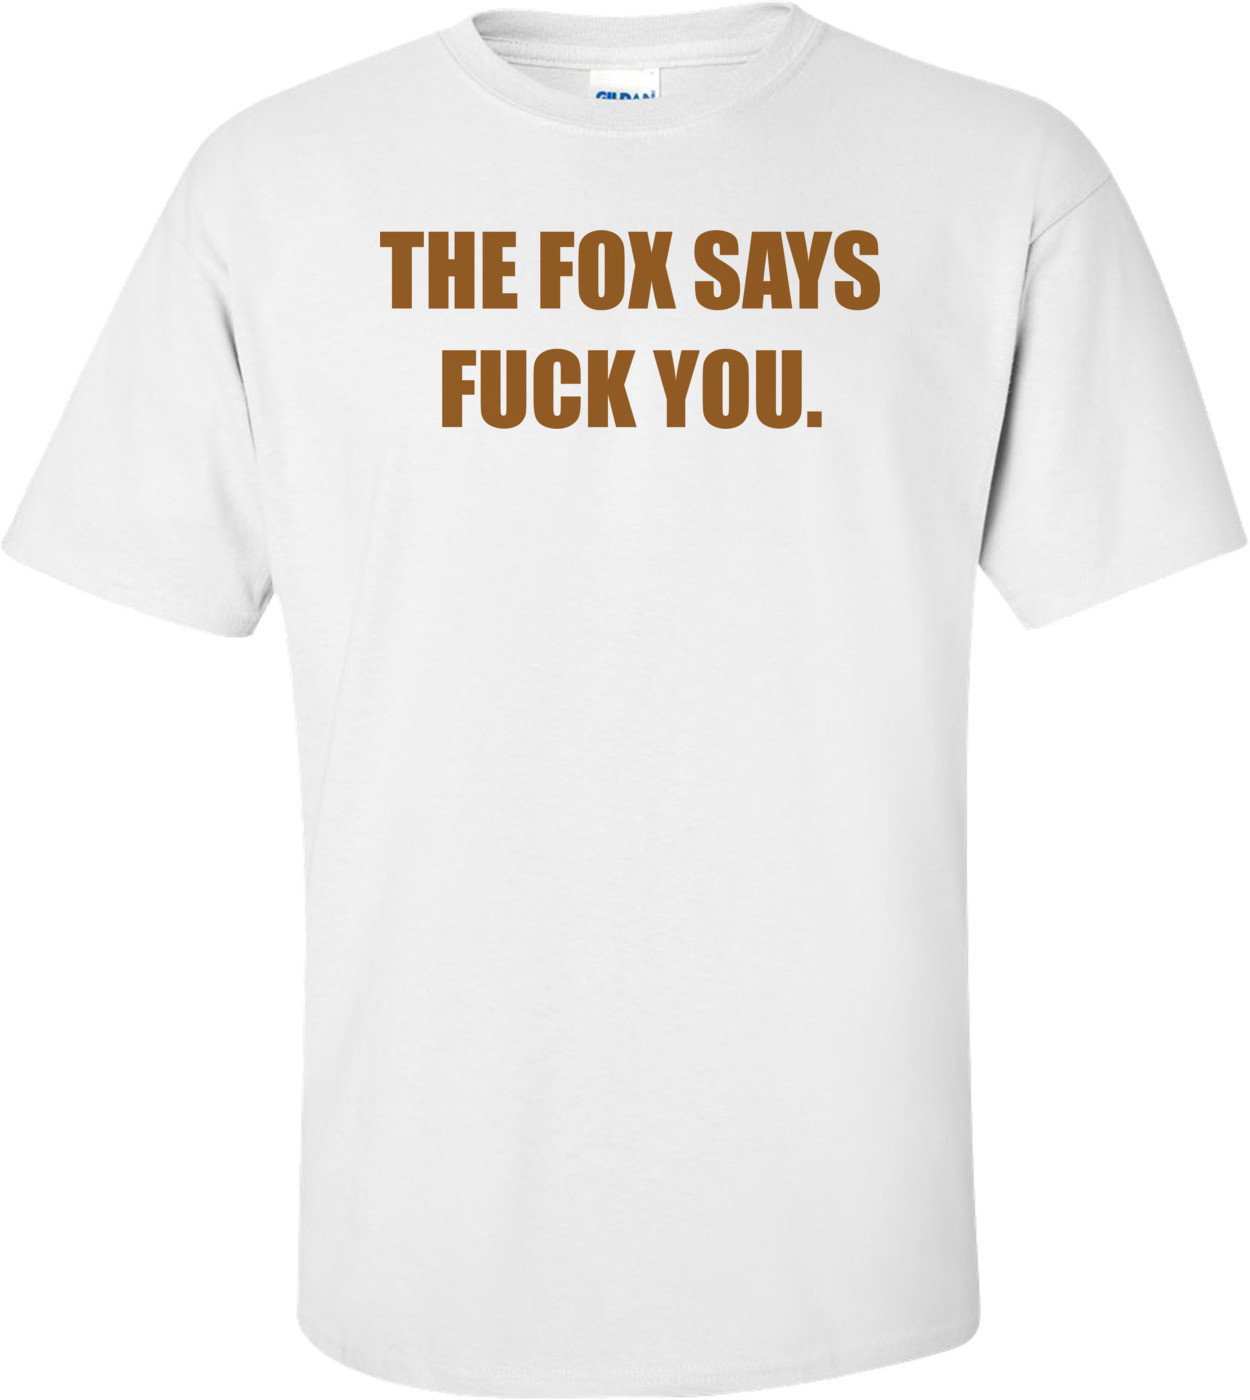 THE FOX SAYS FUCK YOU. Shirt